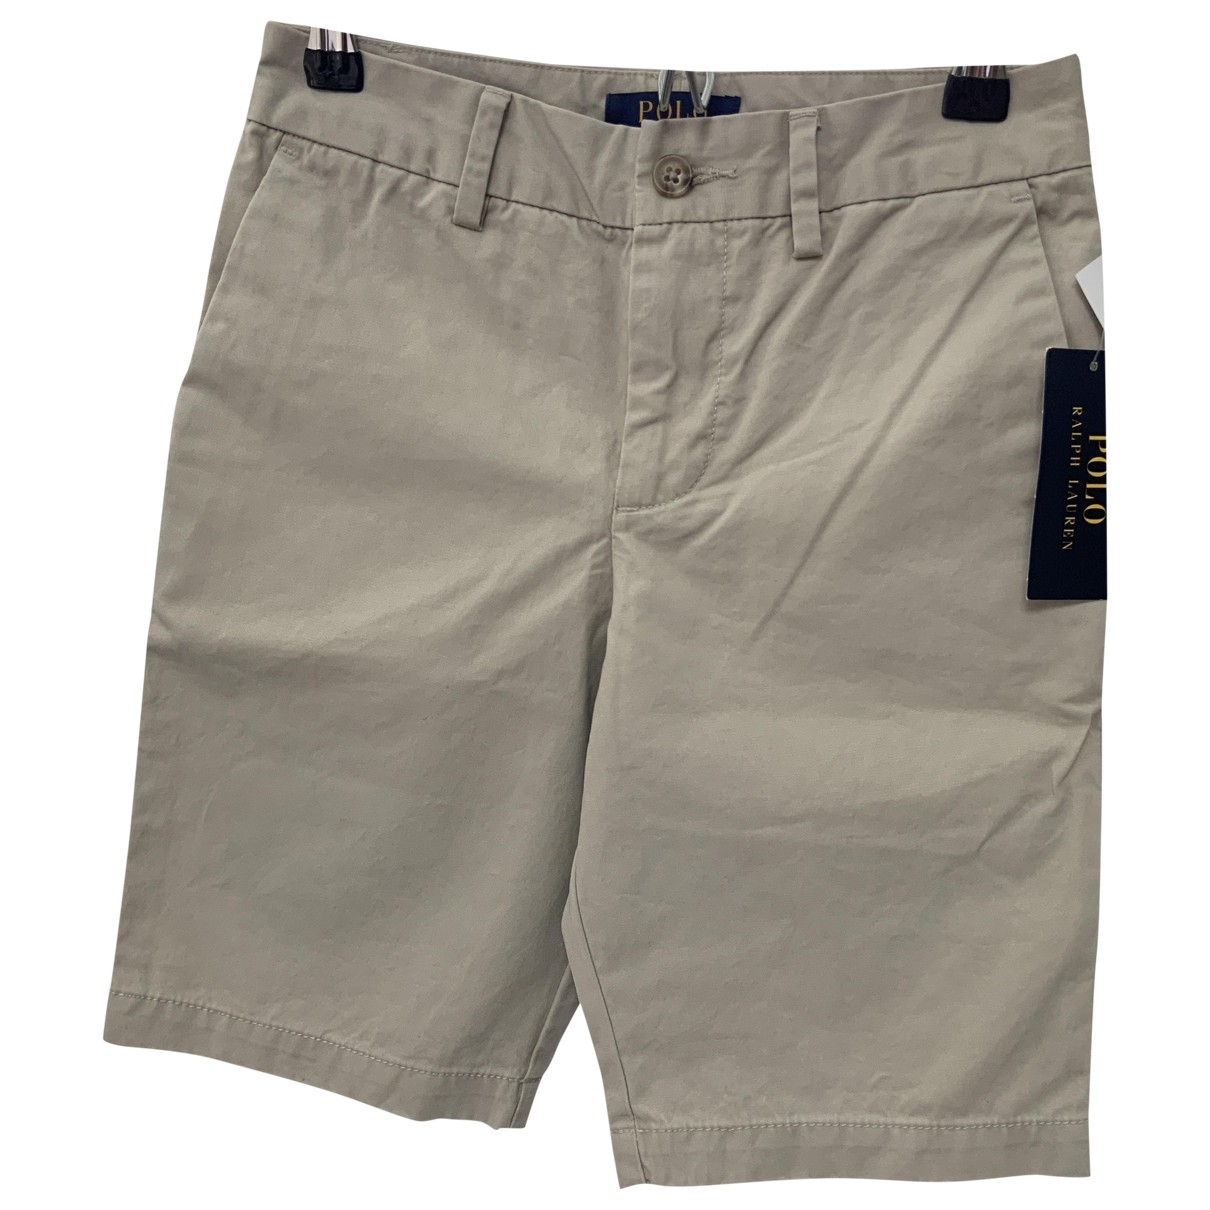 Polo Ralph Lauren \N Beige Cotton Shorts for Kids 8 years - until 50 inches UK